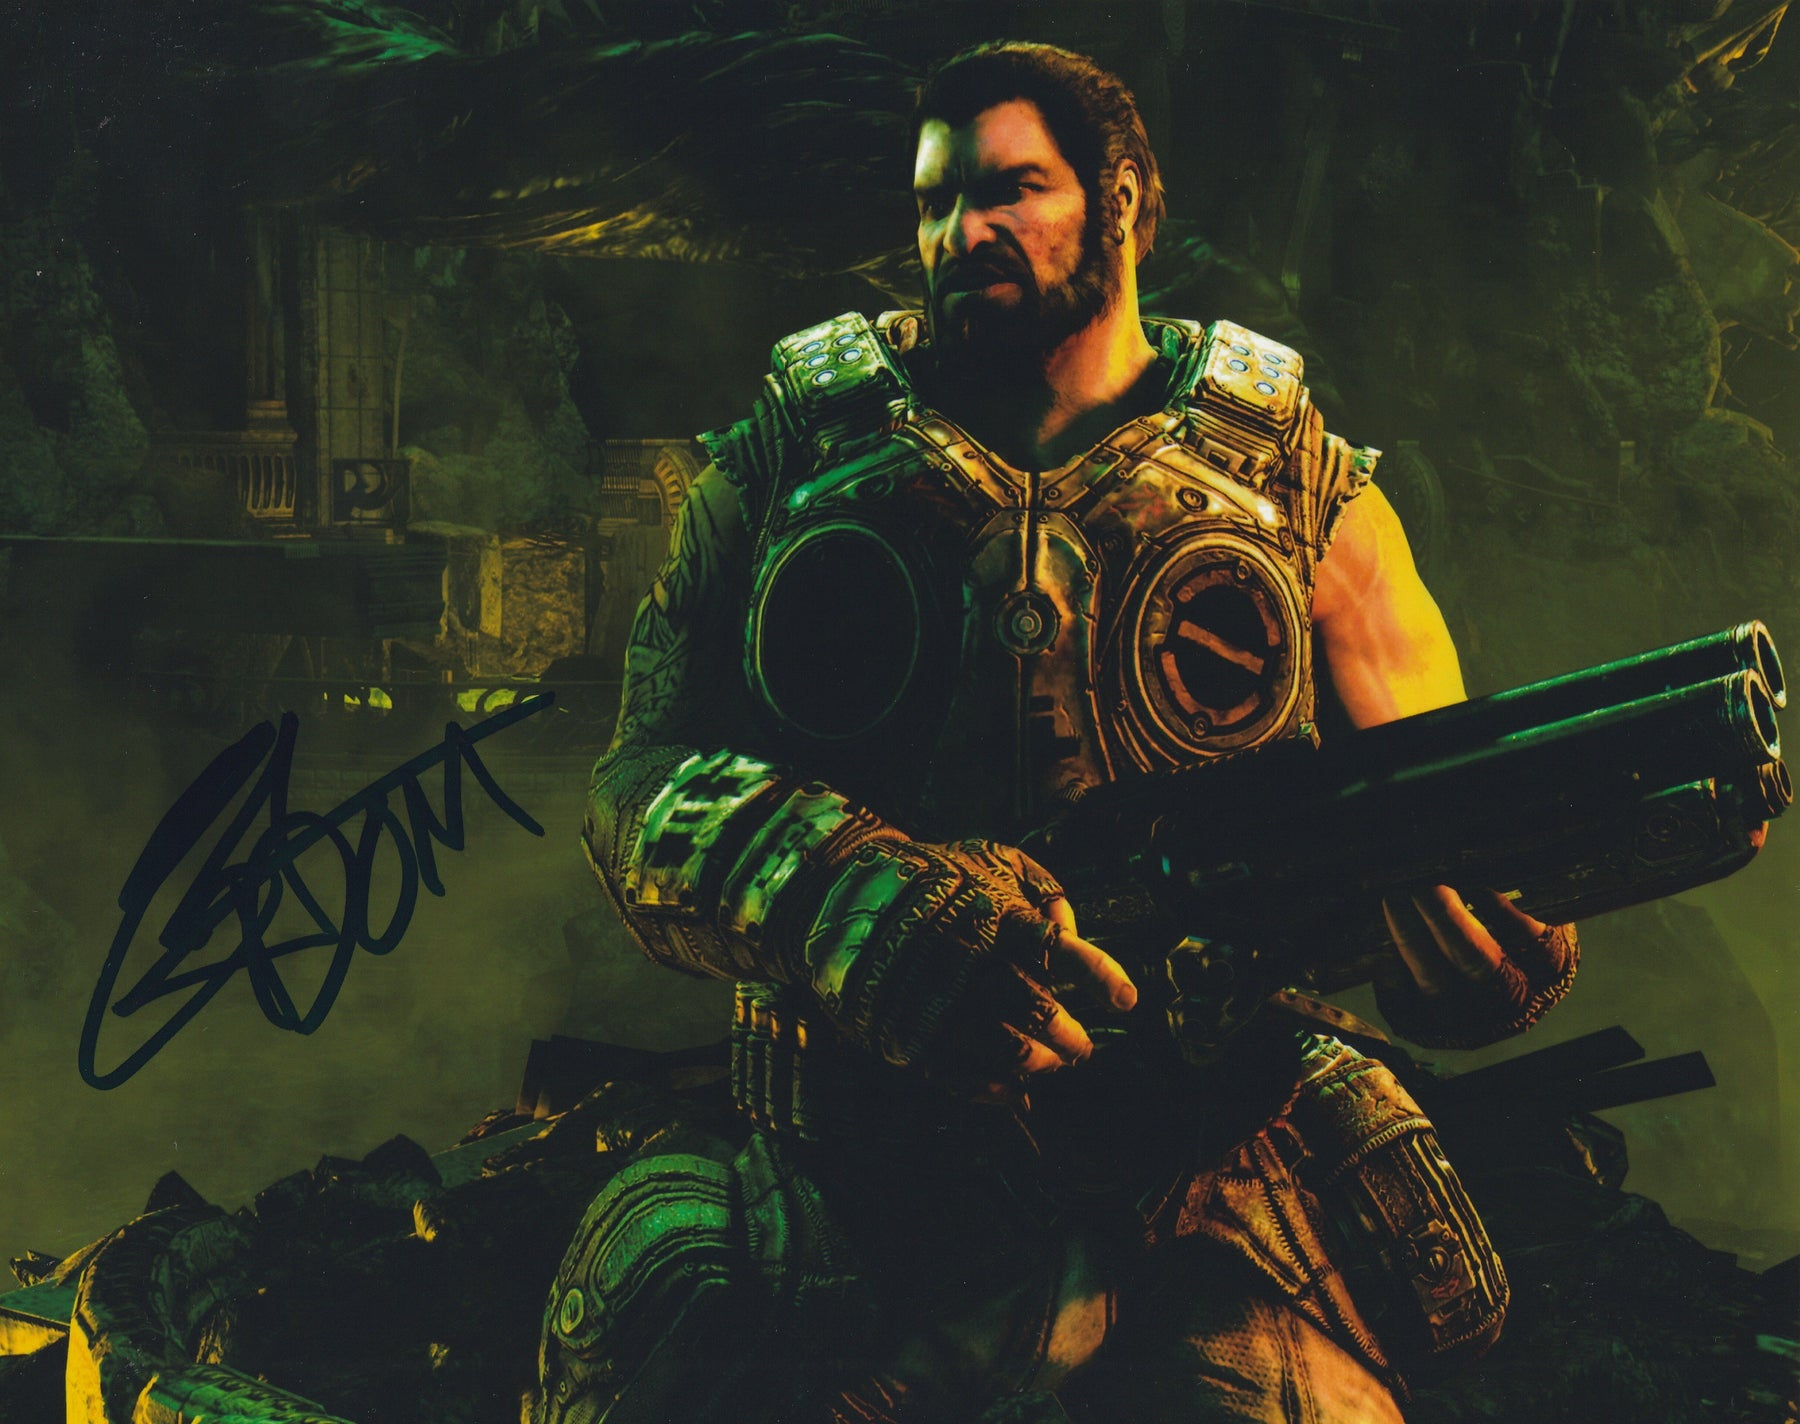 Carlos Ferro Autograph 8x10 Gears of War Photo Dominic Santiago Signed COA Z2